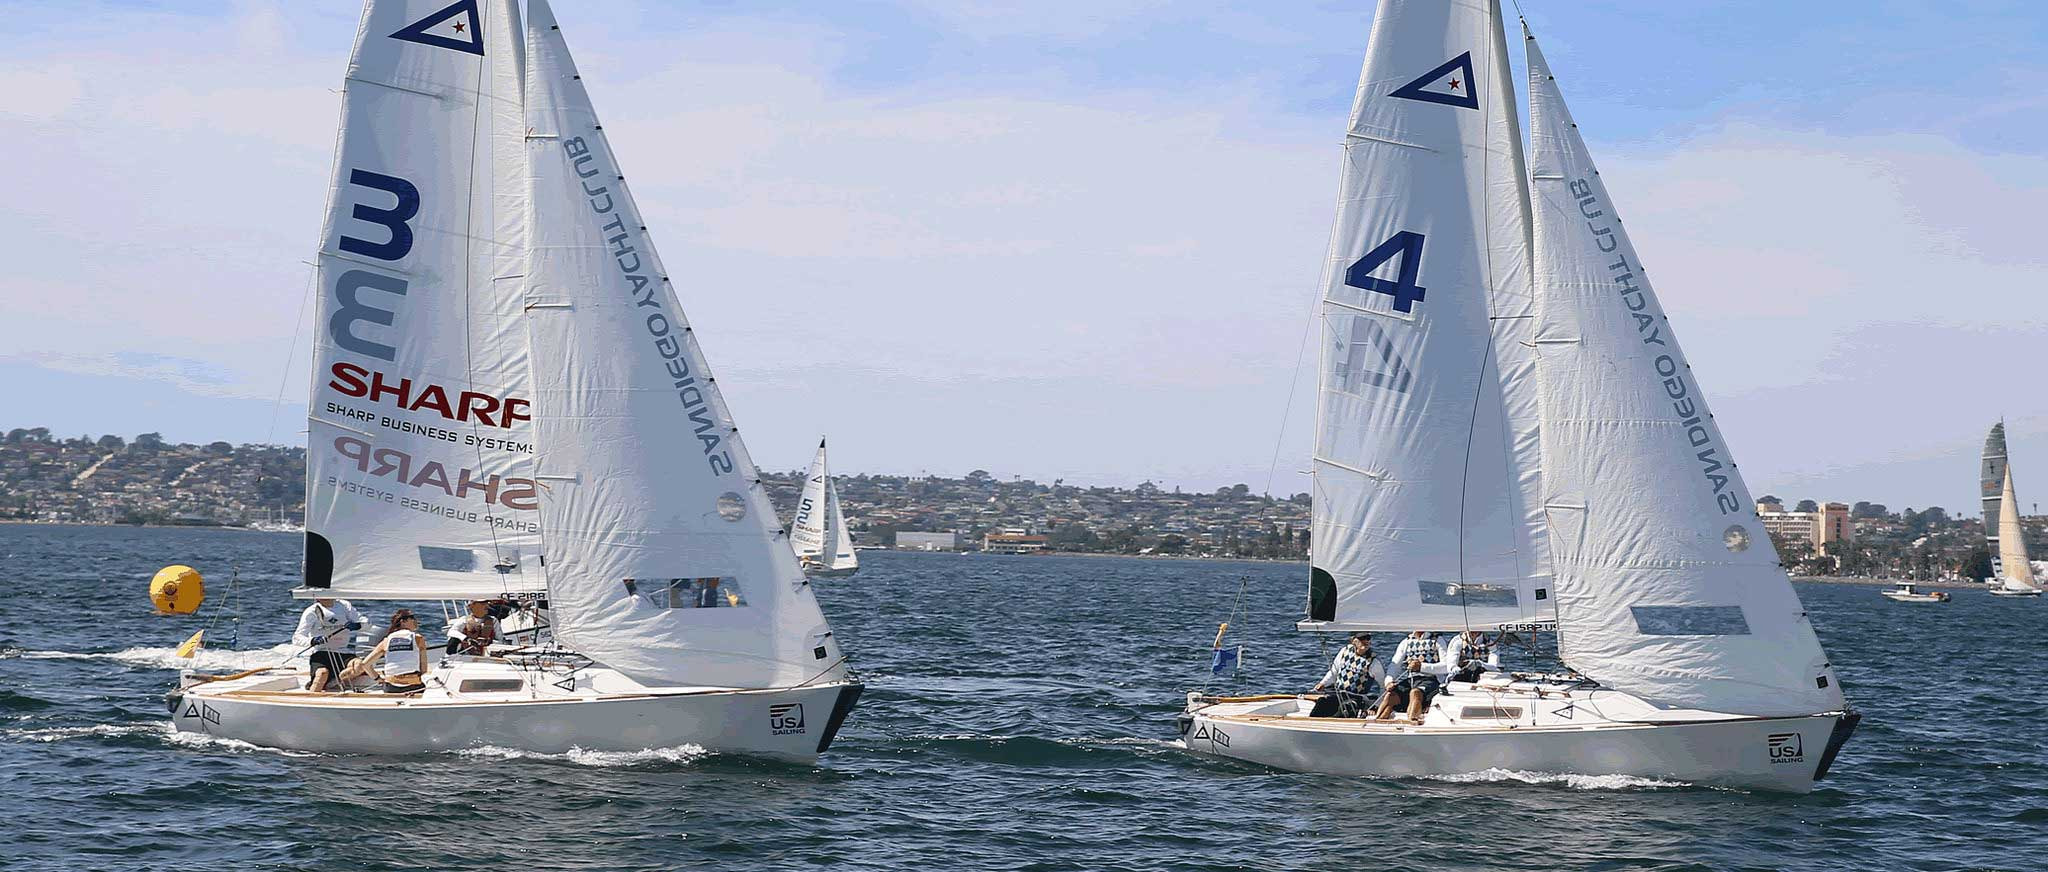 yacht racing one world championship, sailboat race around the world, sailing regatta, sailing events.